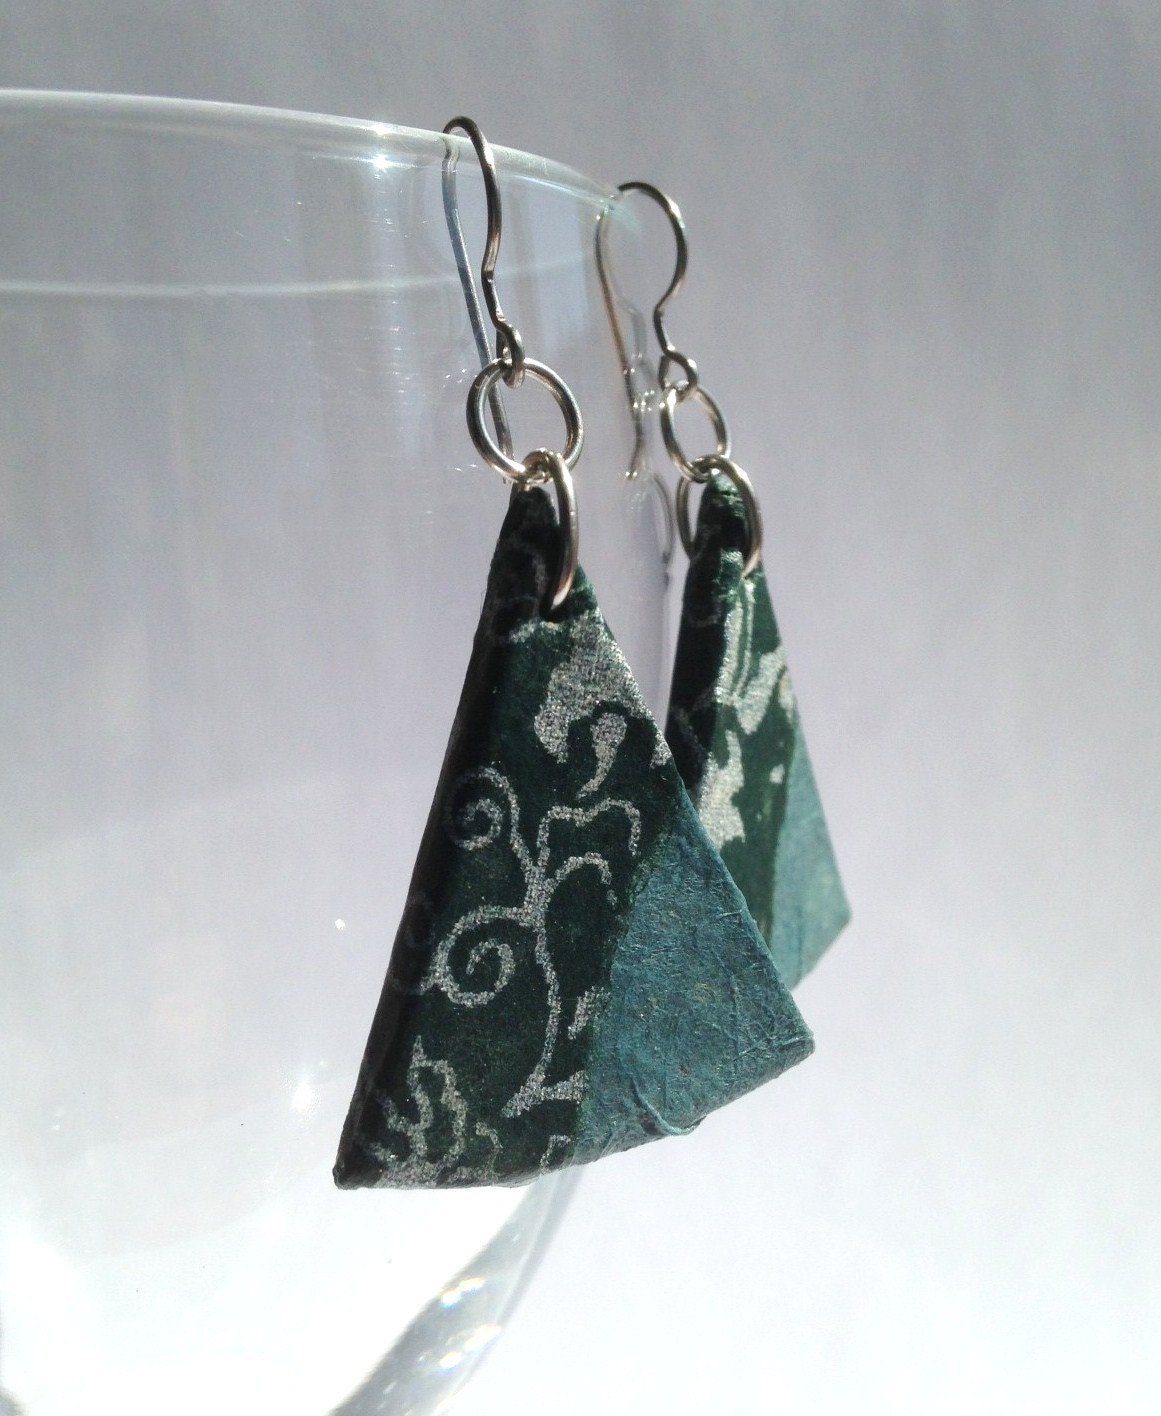 Triangle Green Hanji Paper Dangle Earrings OOAK Handmade Silver Flower Hypoallergenic hooks Lightweight - HanjiNaty